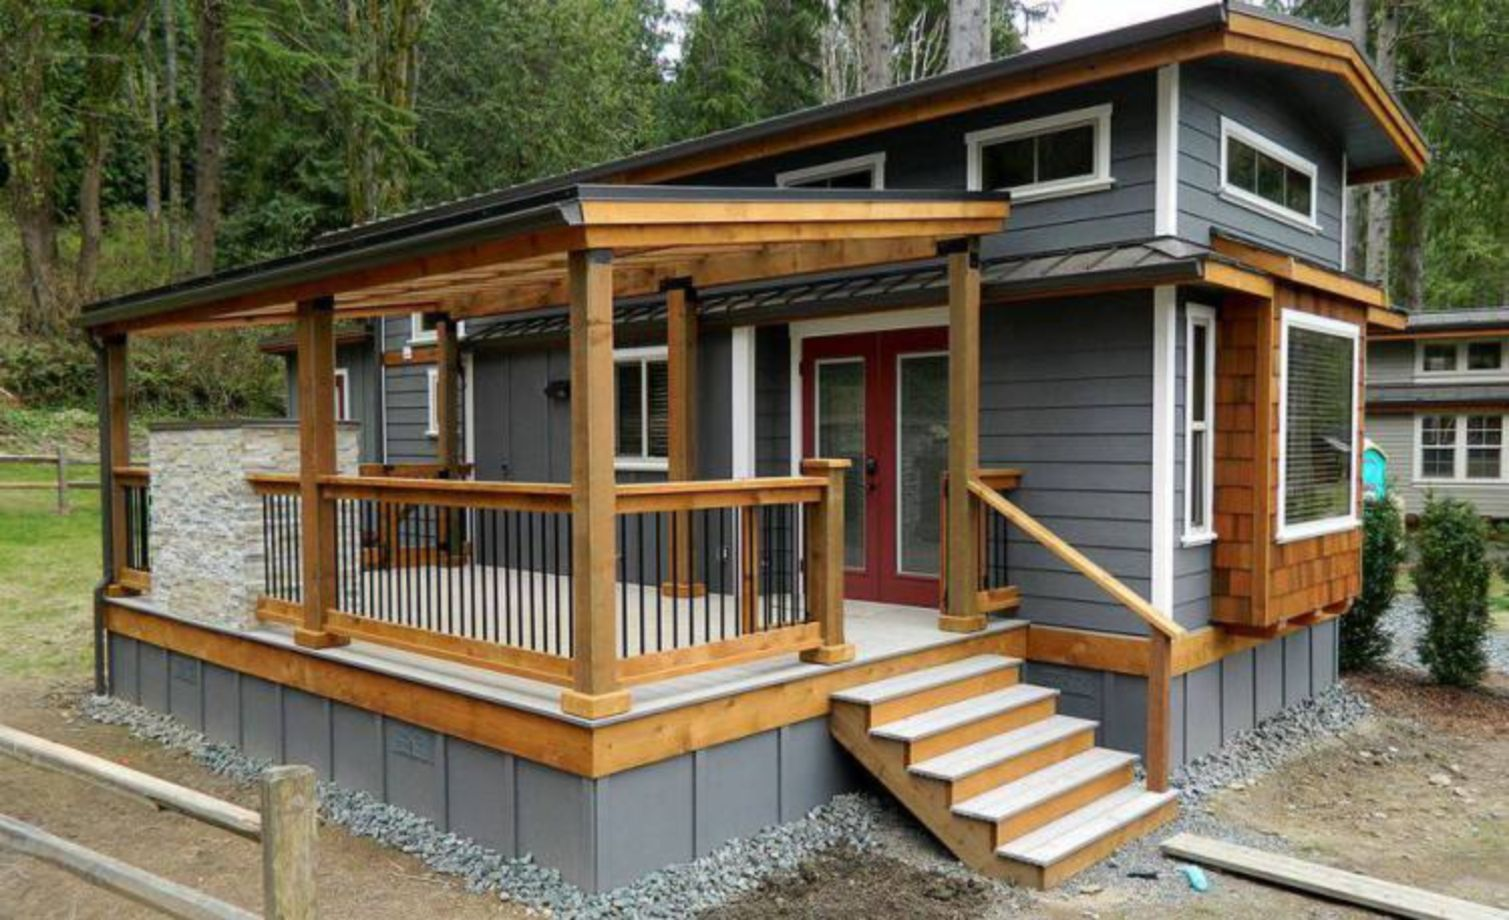 Exterior paint color ideas for mobile homes 05 - ROUNDECOR